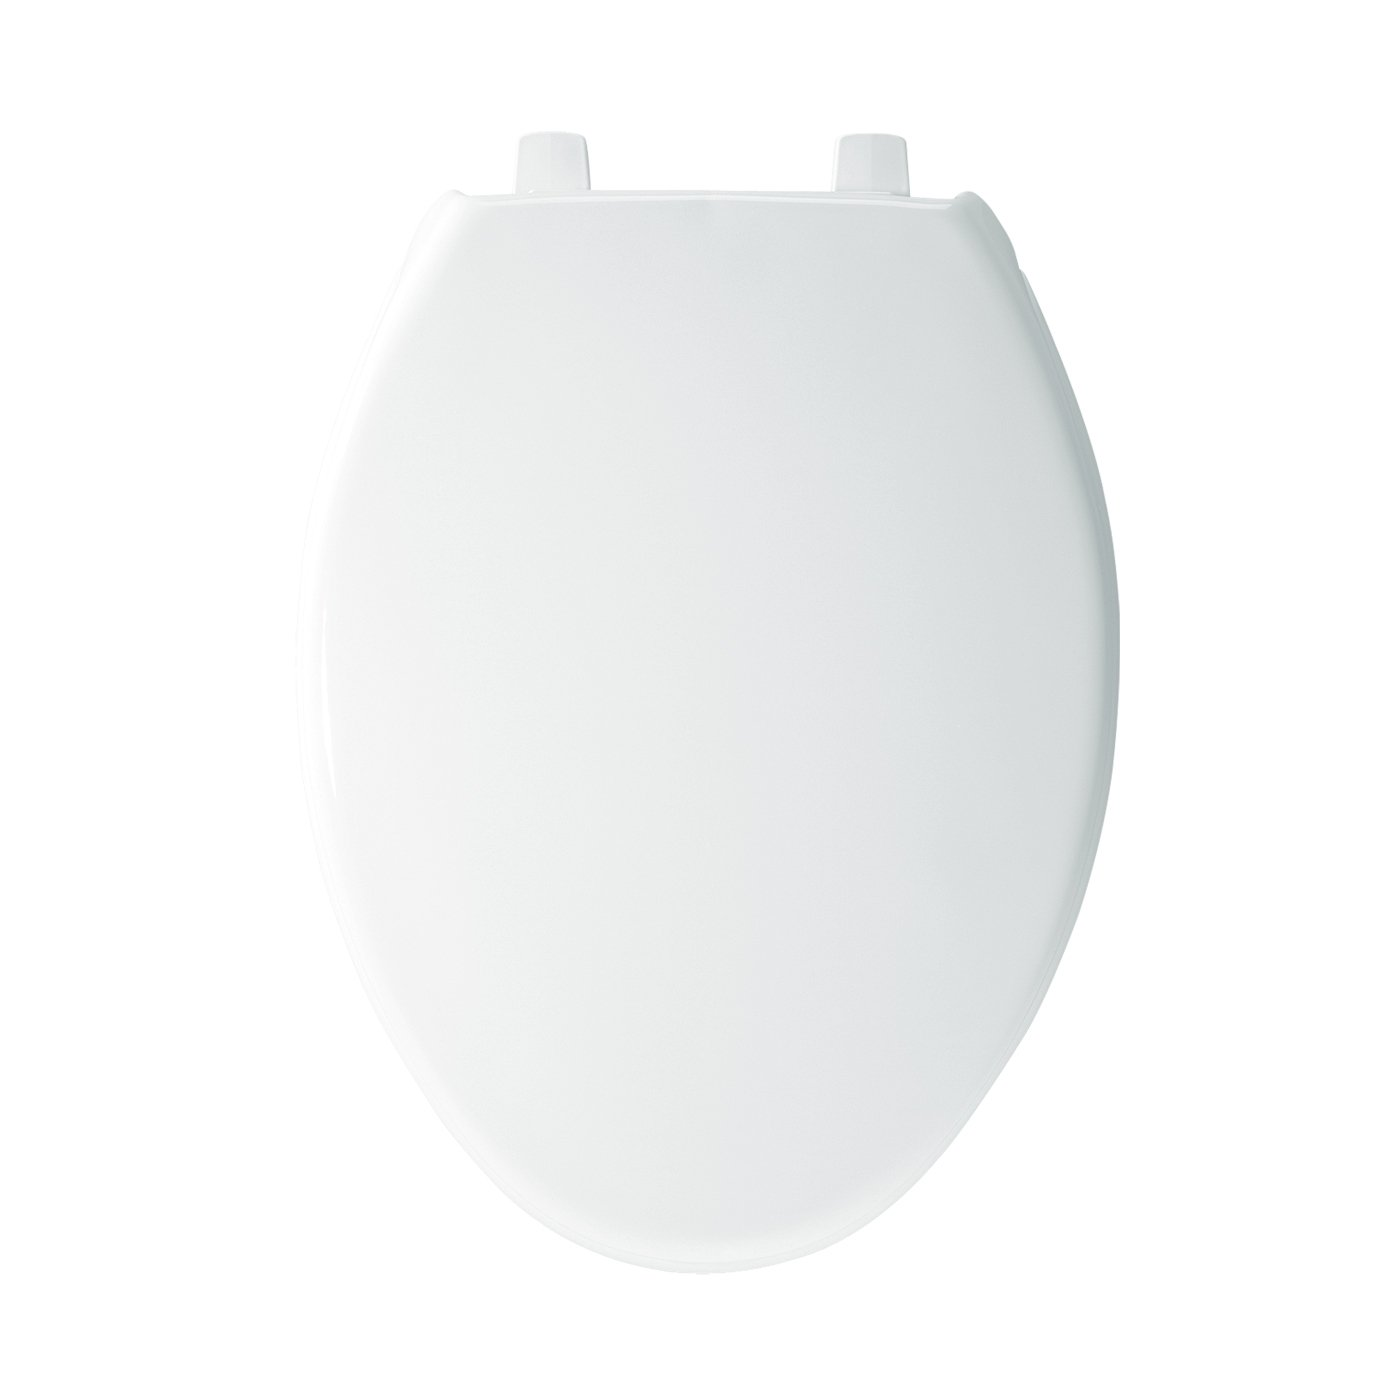 Bemis 1900SS000 Plastic Elongated Toilet Seat with Self Sustaining Hinge, White by Bemis